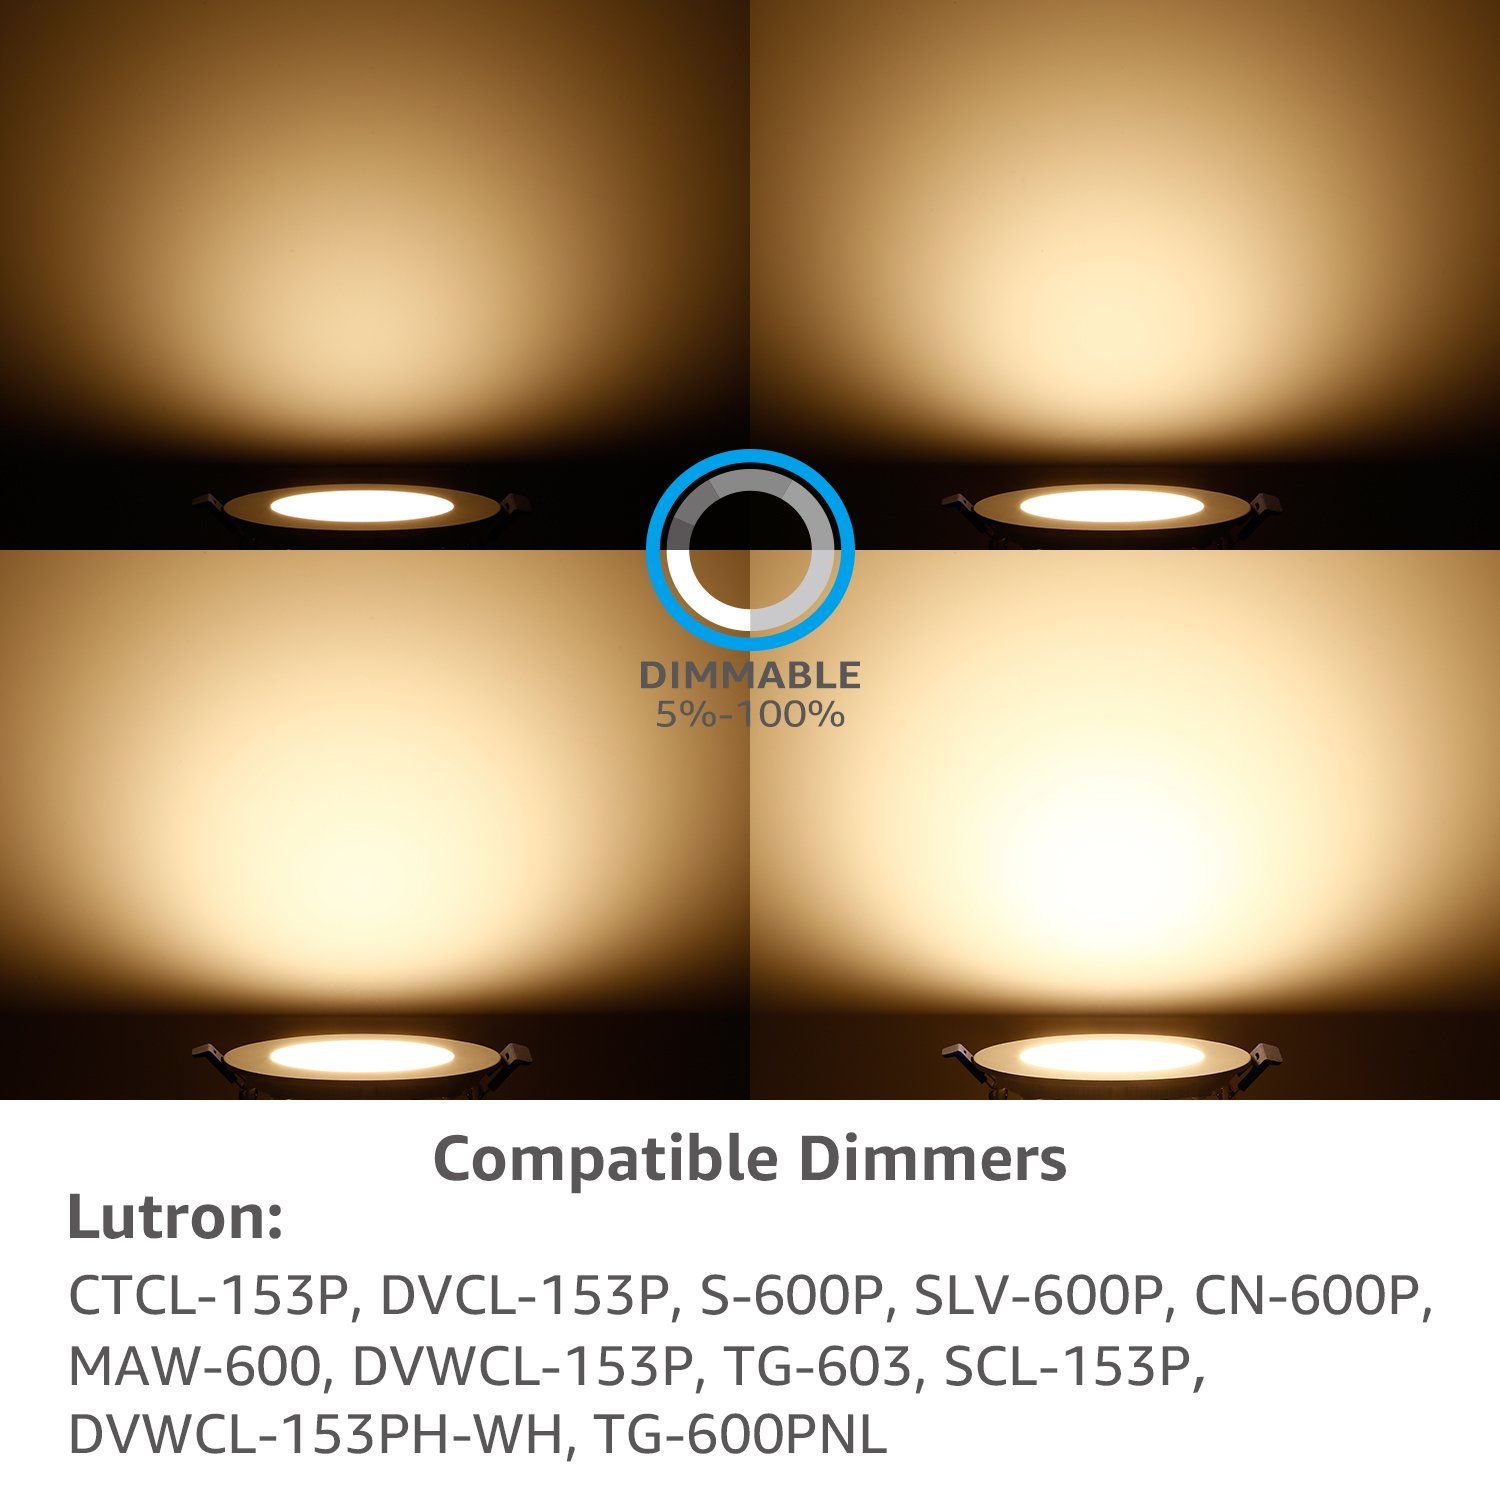 3000K Warm White Wafer Light Pack of 6 JXLDL4D-6P10W30 650lm 80W Equivalent ETL and Energy Star Certified Dimmable Downlight TORCHSTAR 10W 4 Ultra-Thin Recessed Ceiling Light with Junction Box